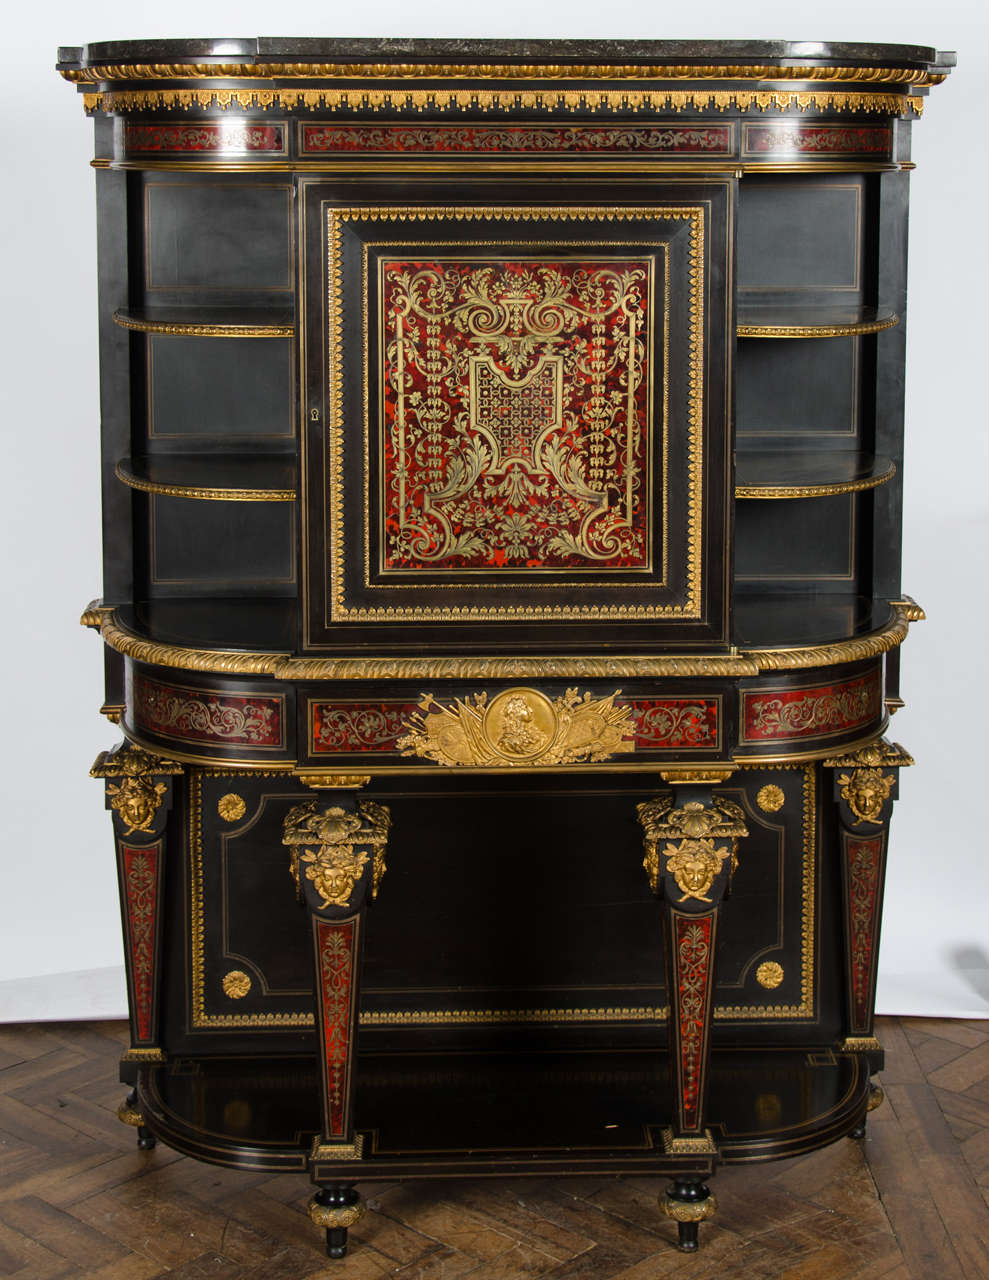 A fine quality French Louis XIV style Boulle inlaid bow fronted side cabinet, having a marble top, open shelves either side of the finely inlaid central door. A single frieze drawer with a gilded ormolu mount depicting the bust of Louis XIV. Raised